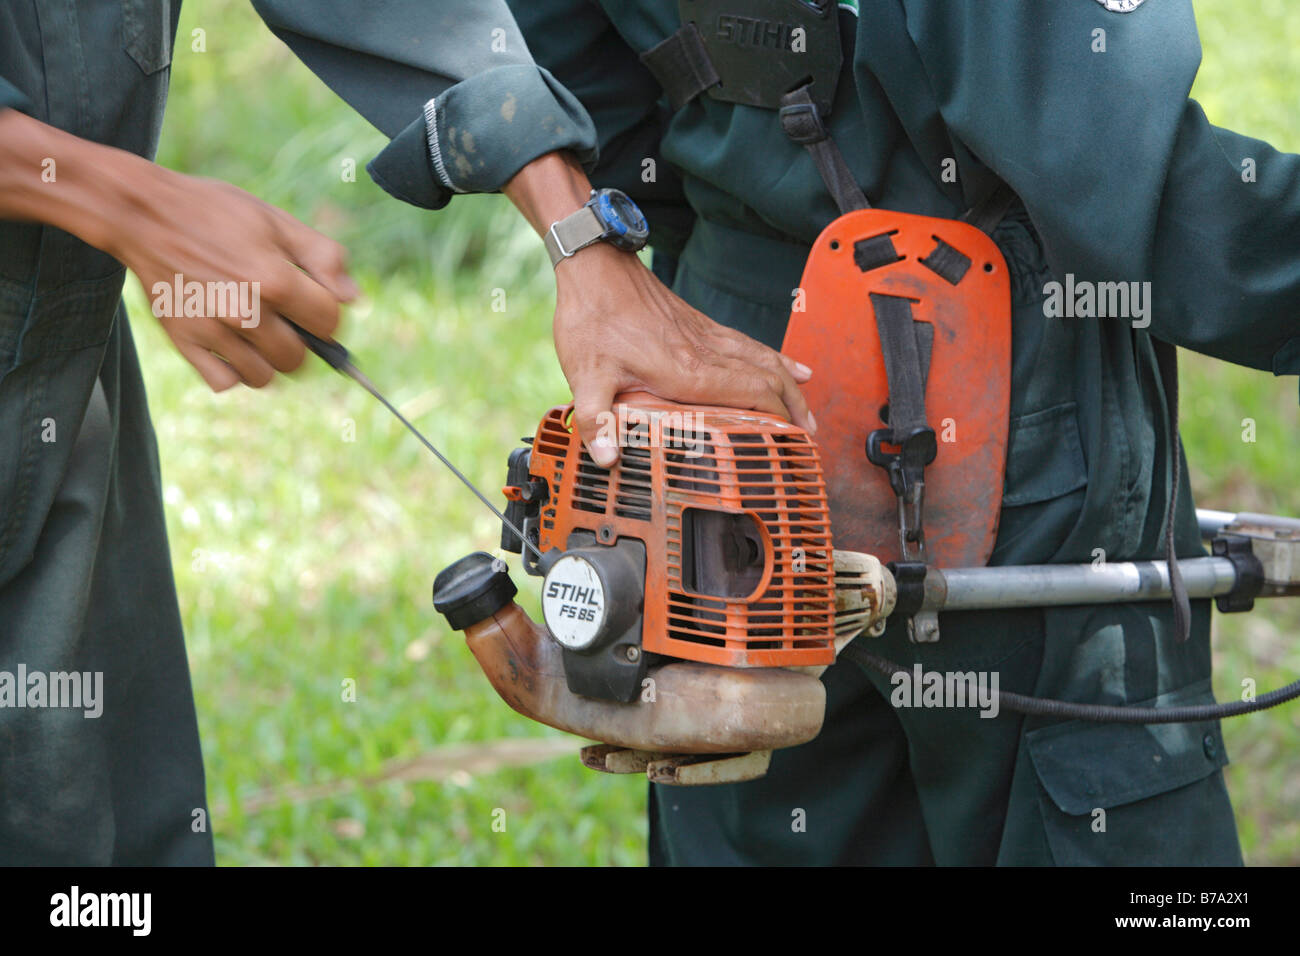 Starting a string trimmer or line trimmer - Stock Image